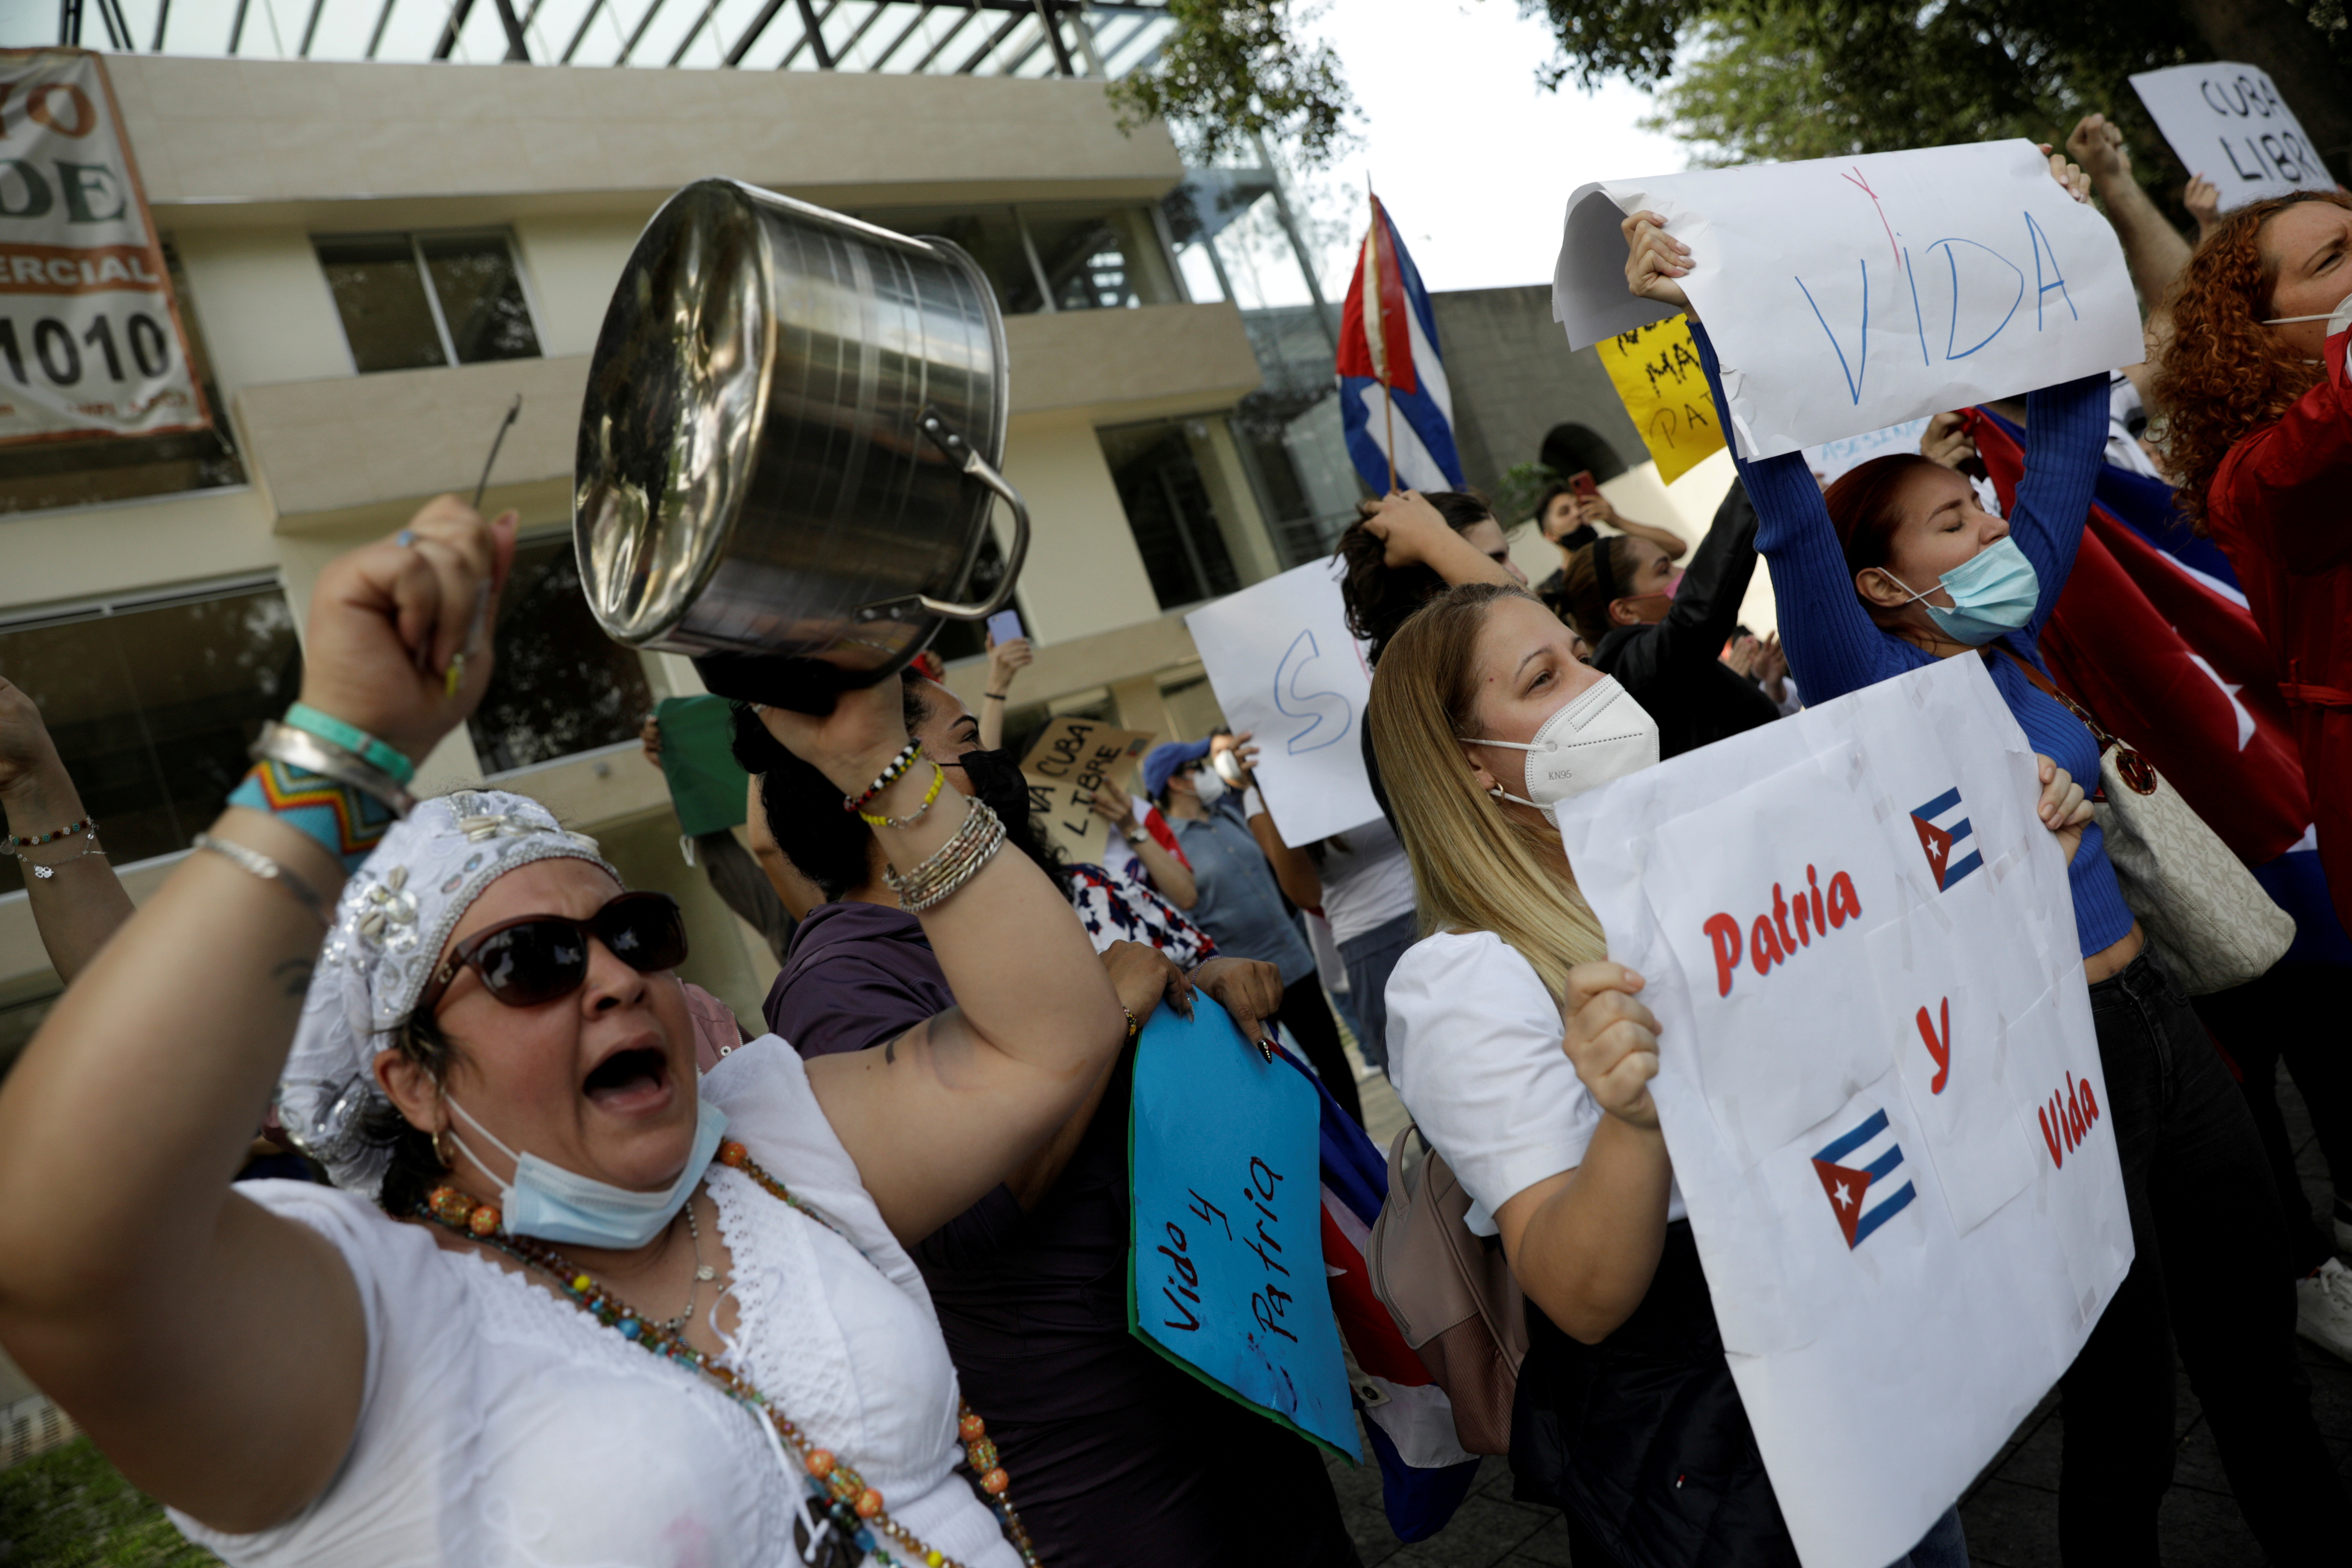 Demonstrators hold placards and bang pots during a protest against the Cuban government outside the Cuban Embassy in Mexico City, Mexico July 12, 2021. REUTERS/Luis Cortes/File Photo